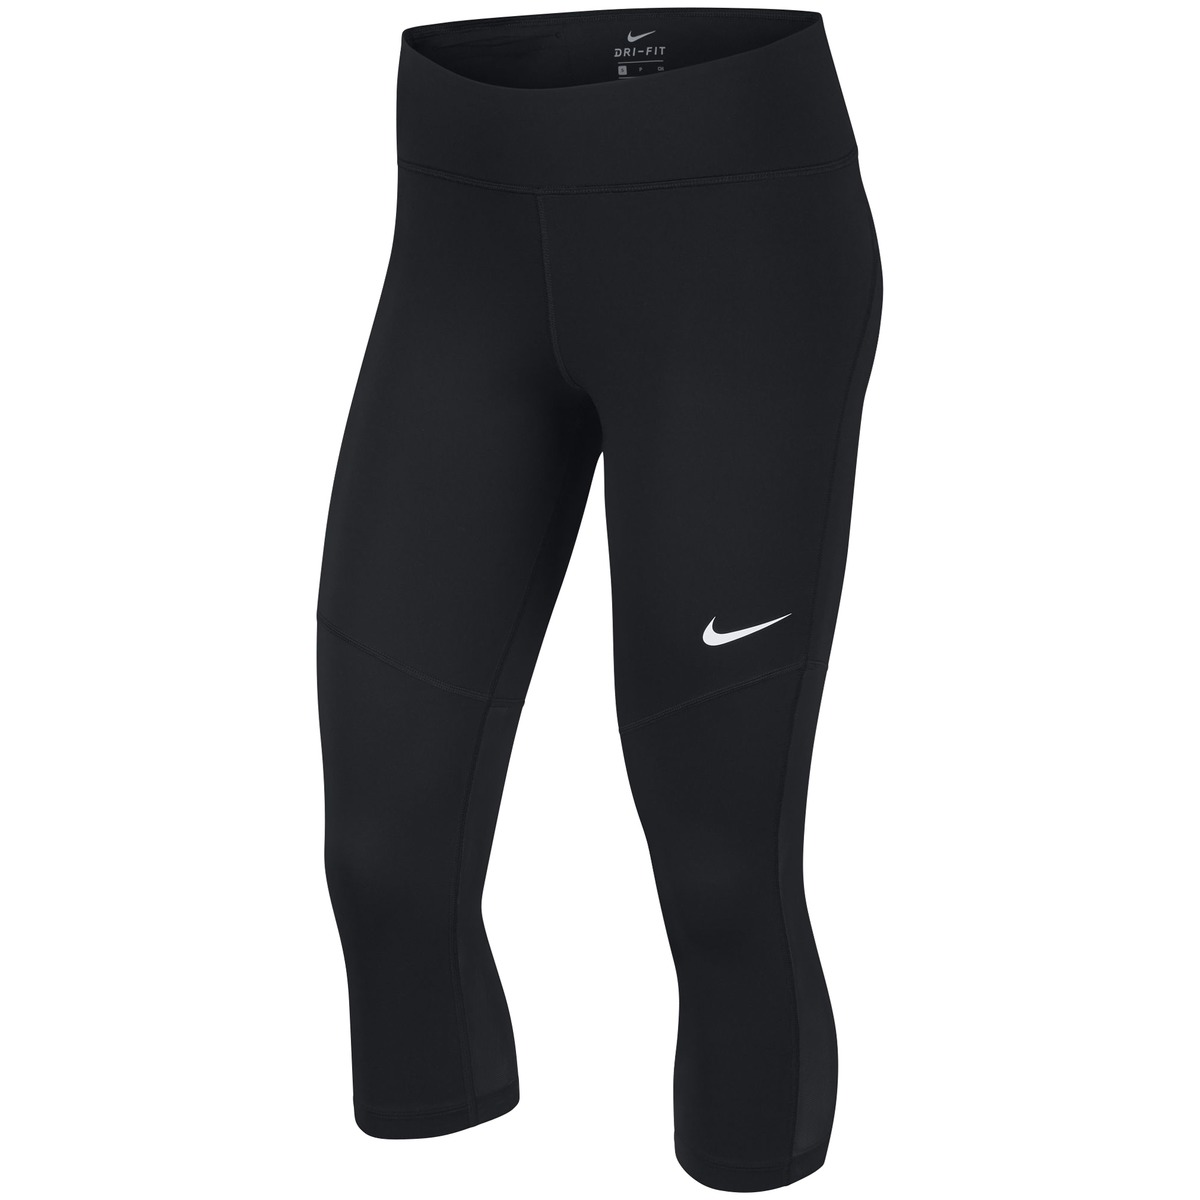 CropSporttightsDamen CropSporttightsDamen Fly Power Power Victory Fly Victory Power KFlTc1J3